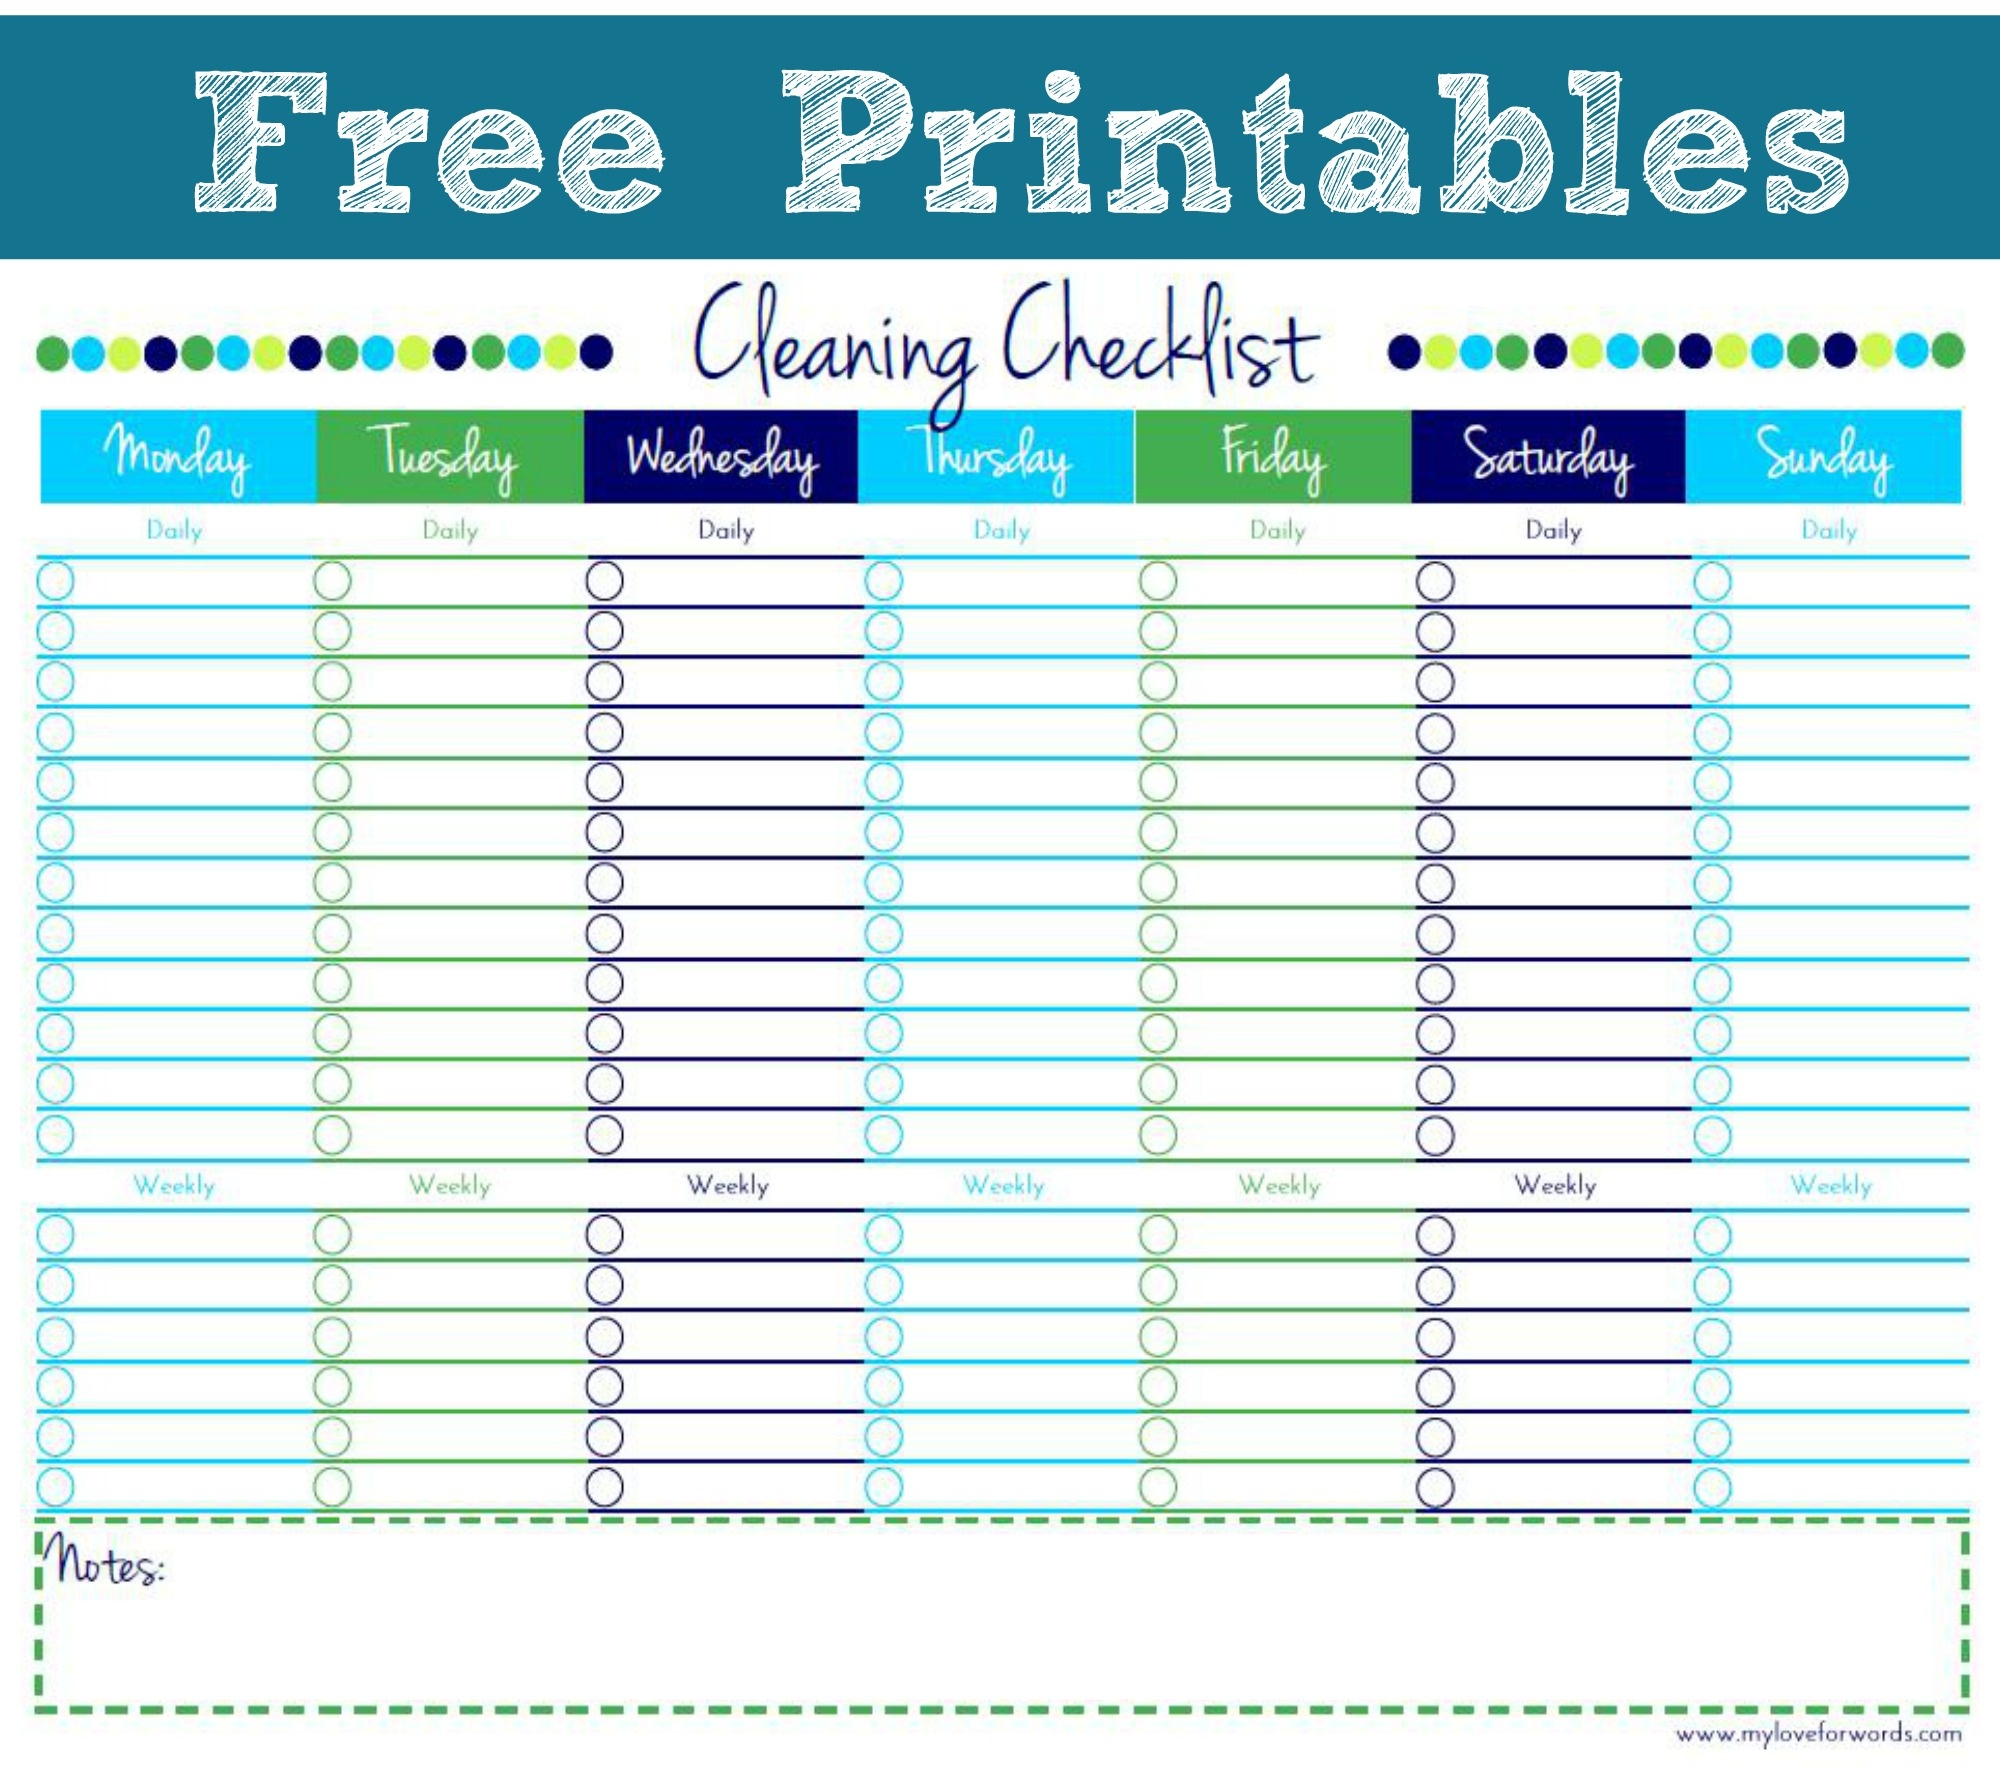 Cleaning Checklist {Free Printable} - Free Printable Checklist